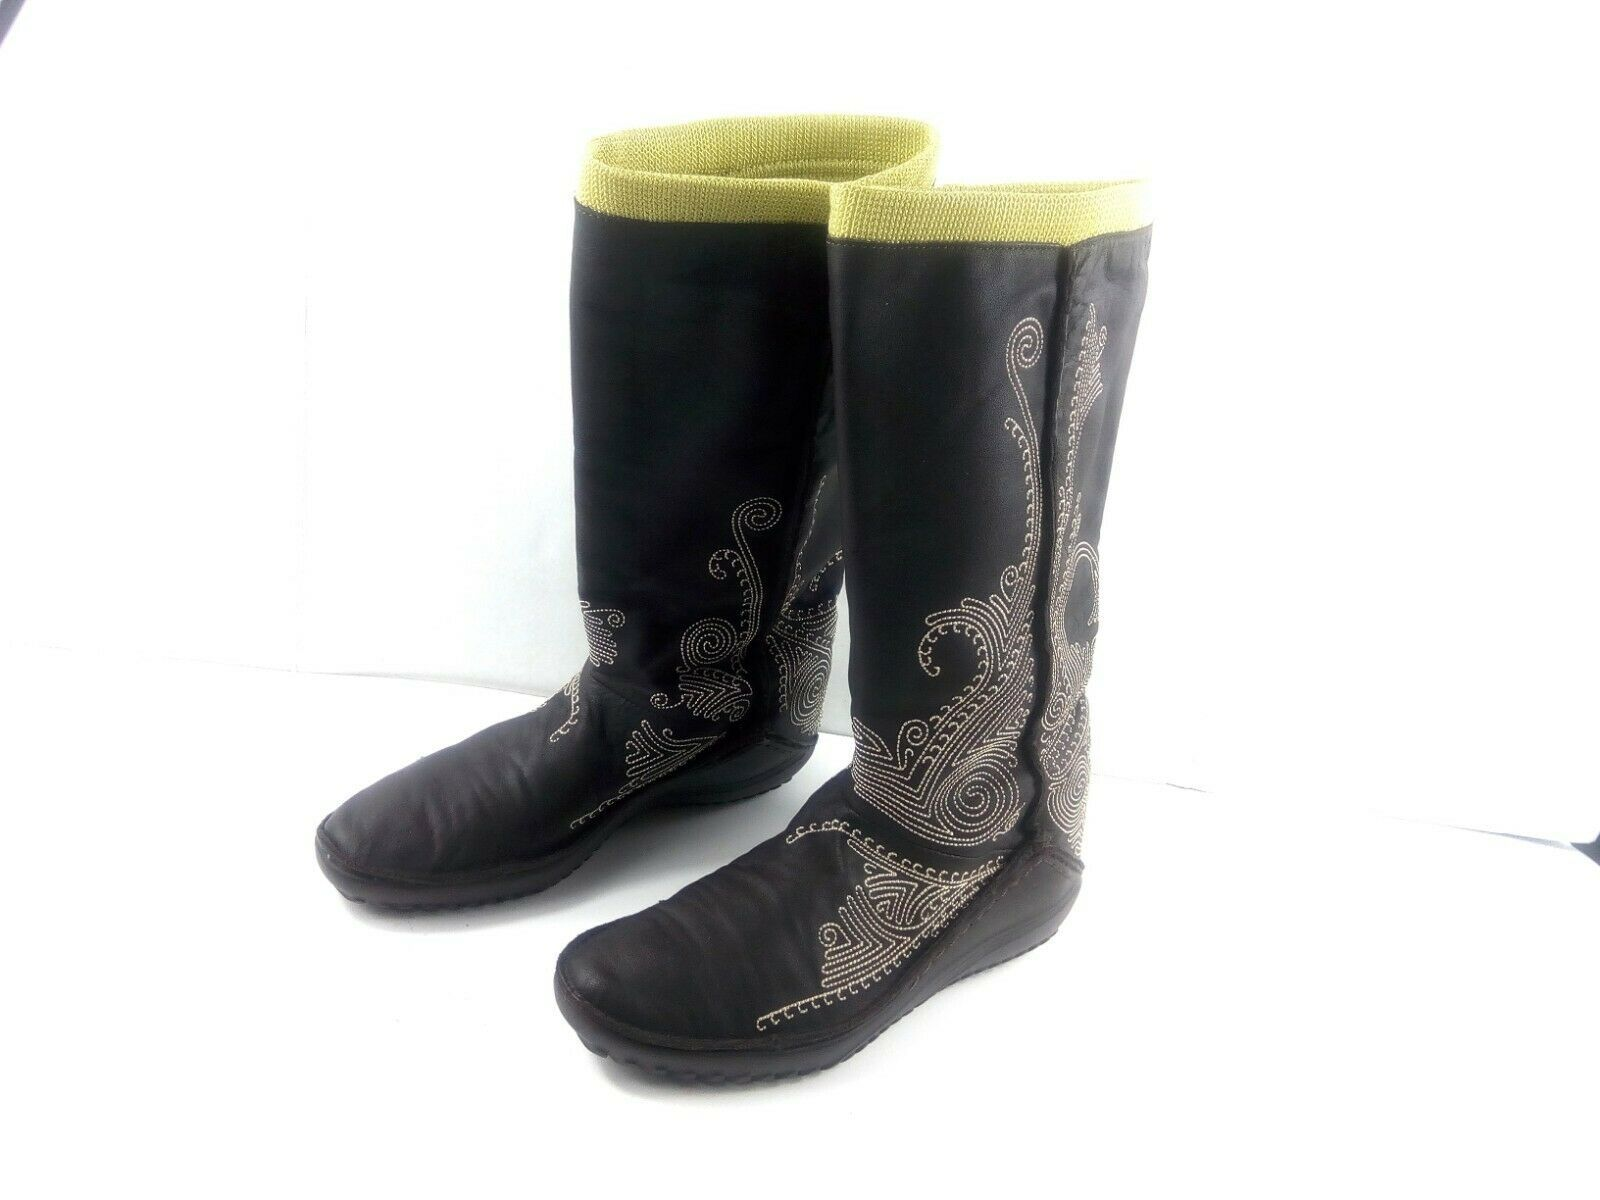 Puma Women's Boots Monsoon Tall Leather Embroidered Brown/Green Booties 7.5 W image 4